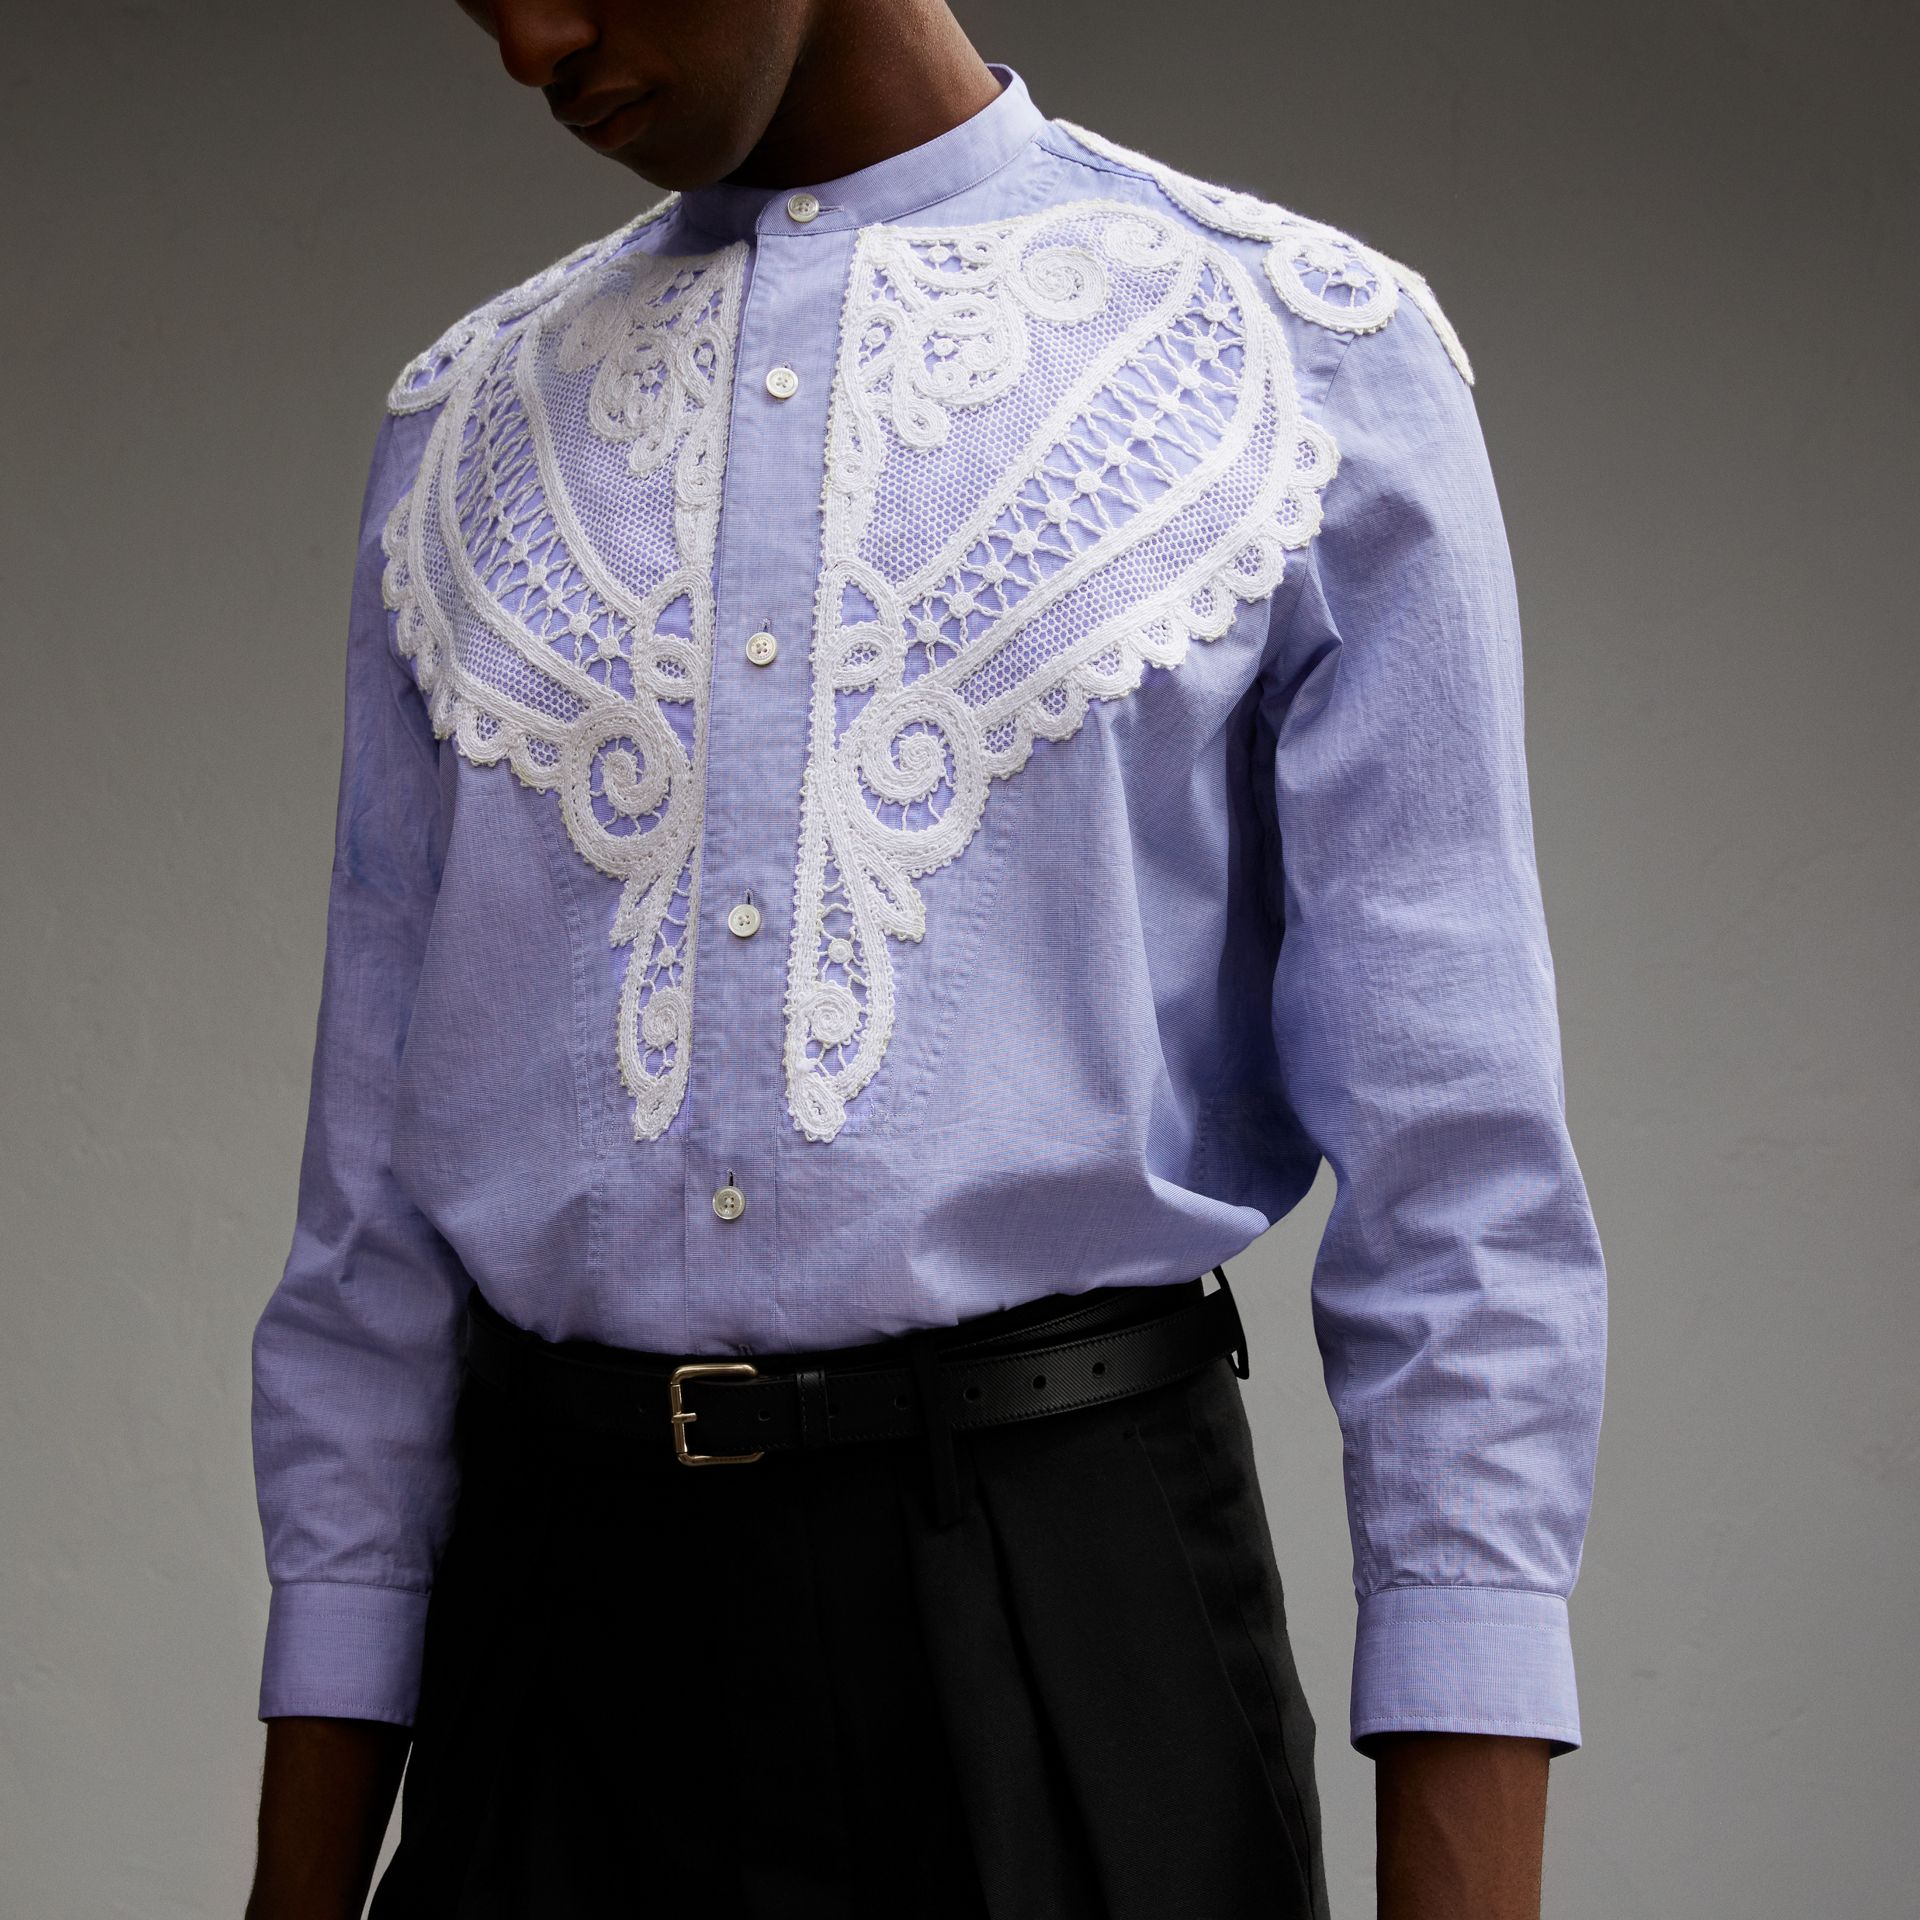 Lace Appliqué Cotton Chambray Shirt in Mid Indigo - Men | Burberry - gallery image 5